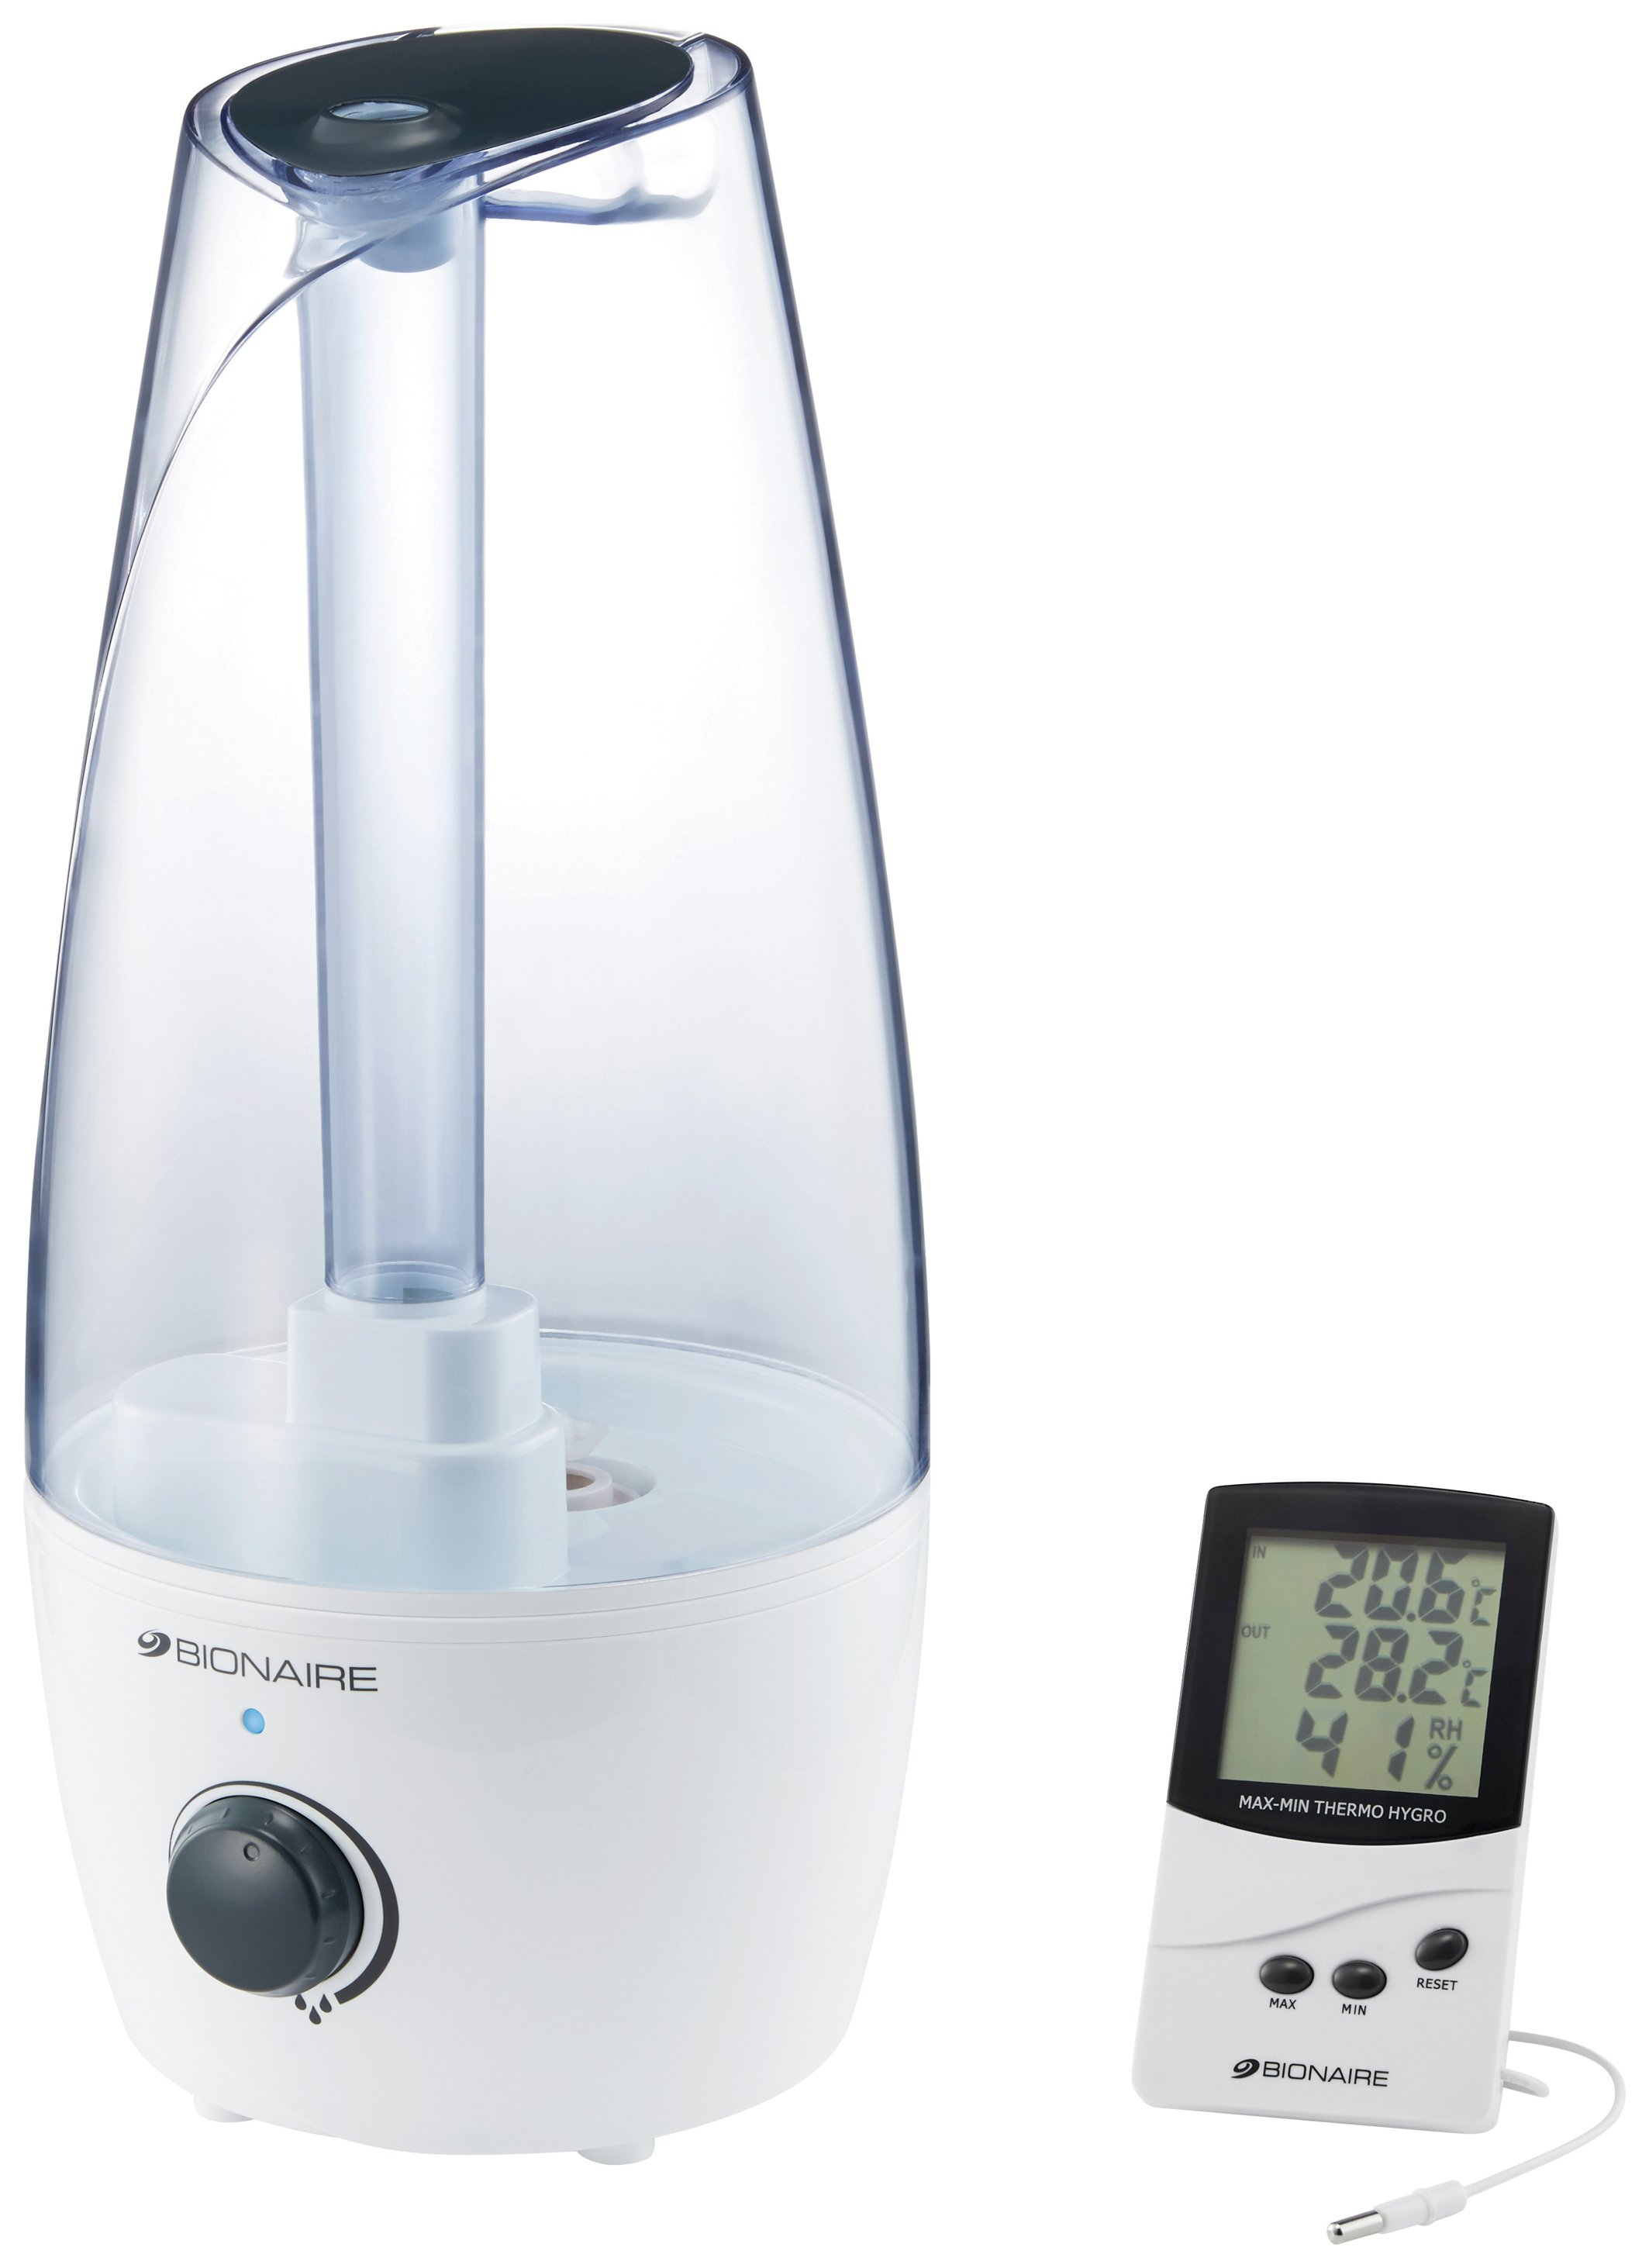 Image of Bionaire BUH004 Ultrasonic Humidifier with Hygrometer